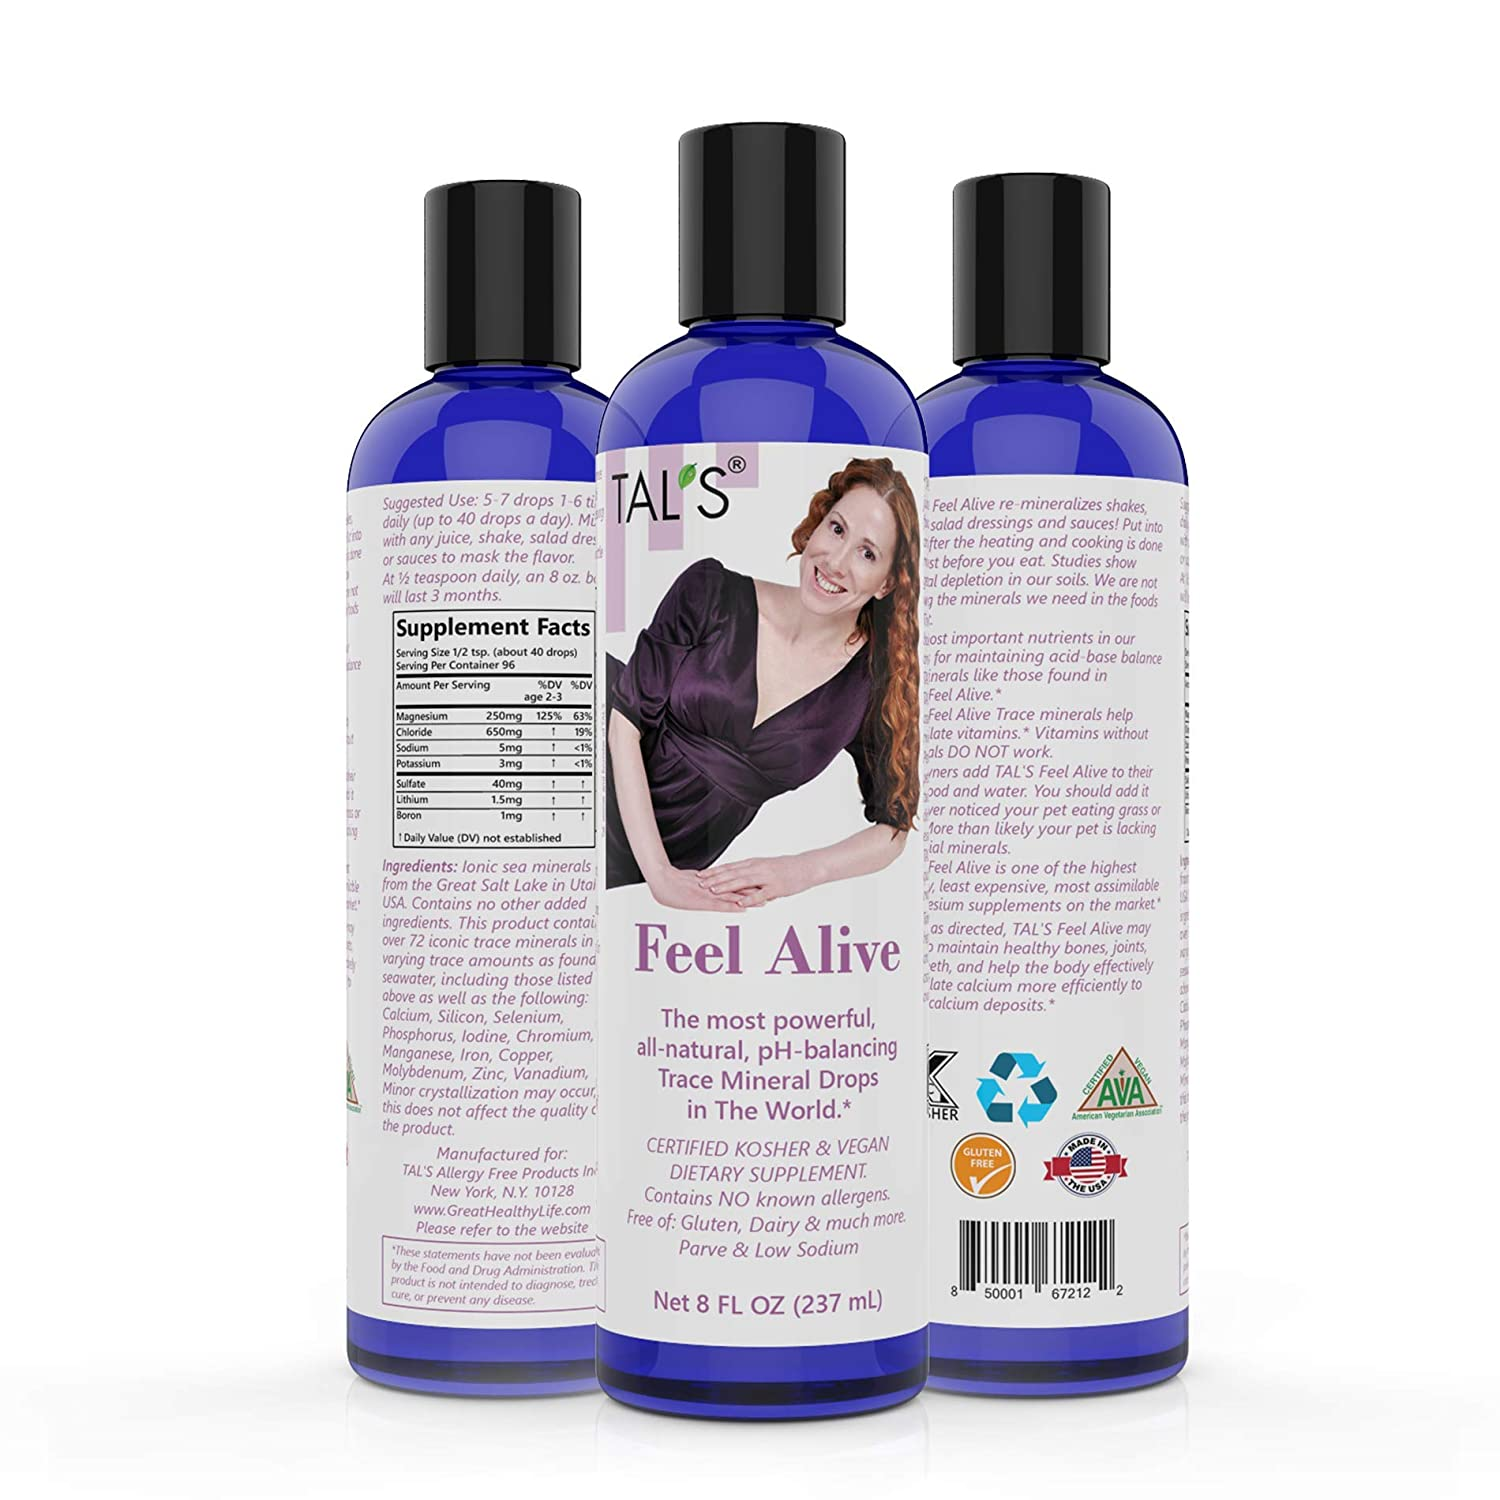 TAL S Feel Alive Trace Mineral Drops All-Natural p-H Balancing Magnesium Supplement Improves Vitamin Calcium Absorption Strengthens Bones Joints Teeth Certified Kosher Non-GMO 8oz